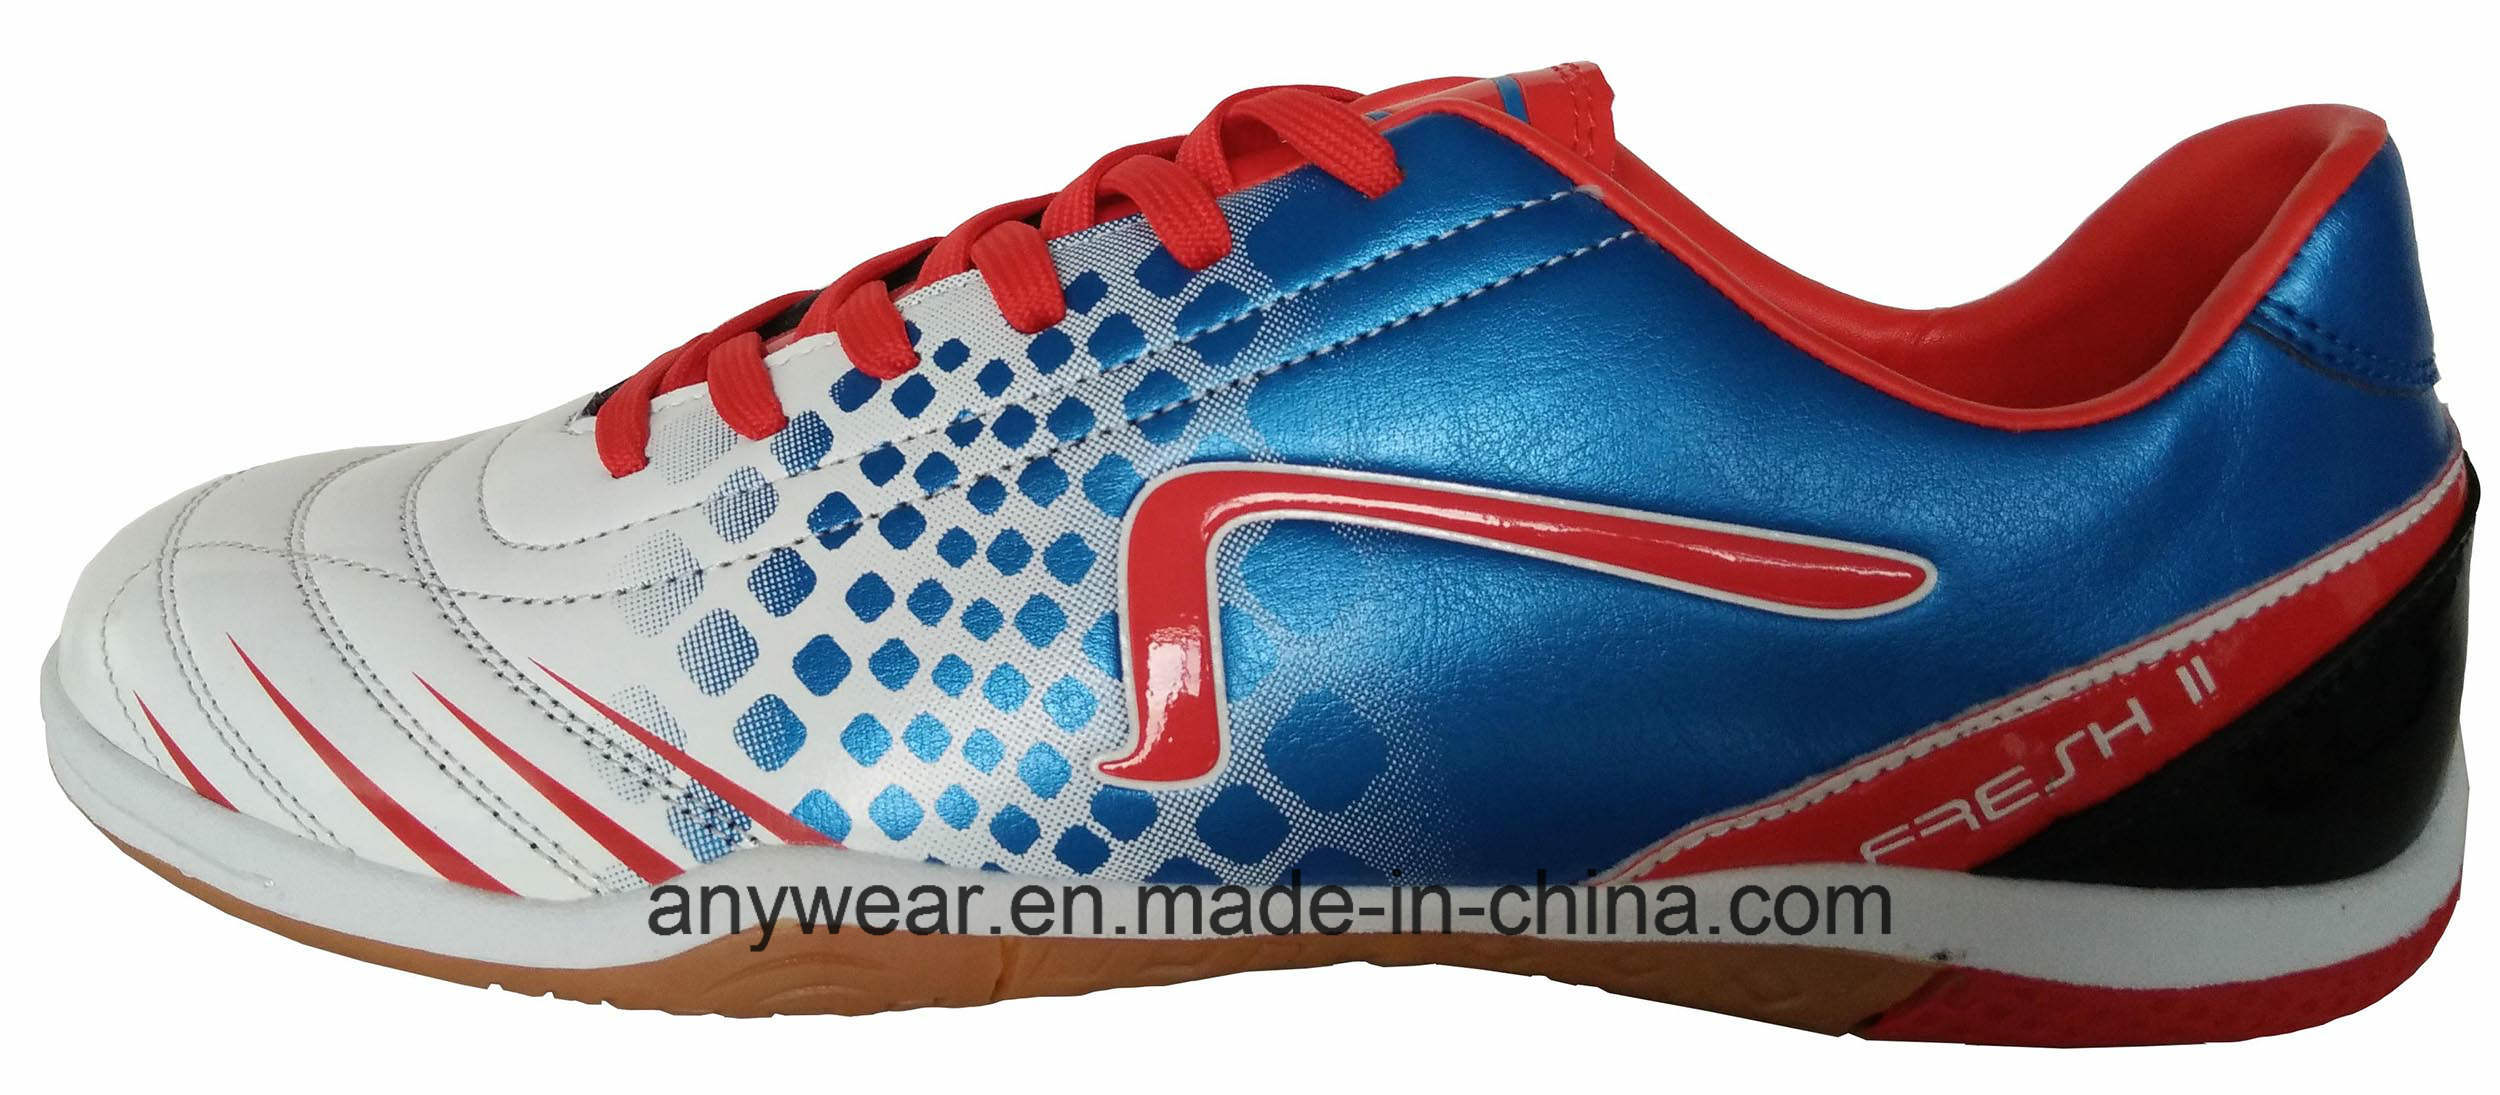 Athletic Footwear Football Soccer Indoor Shoes (816-1969)